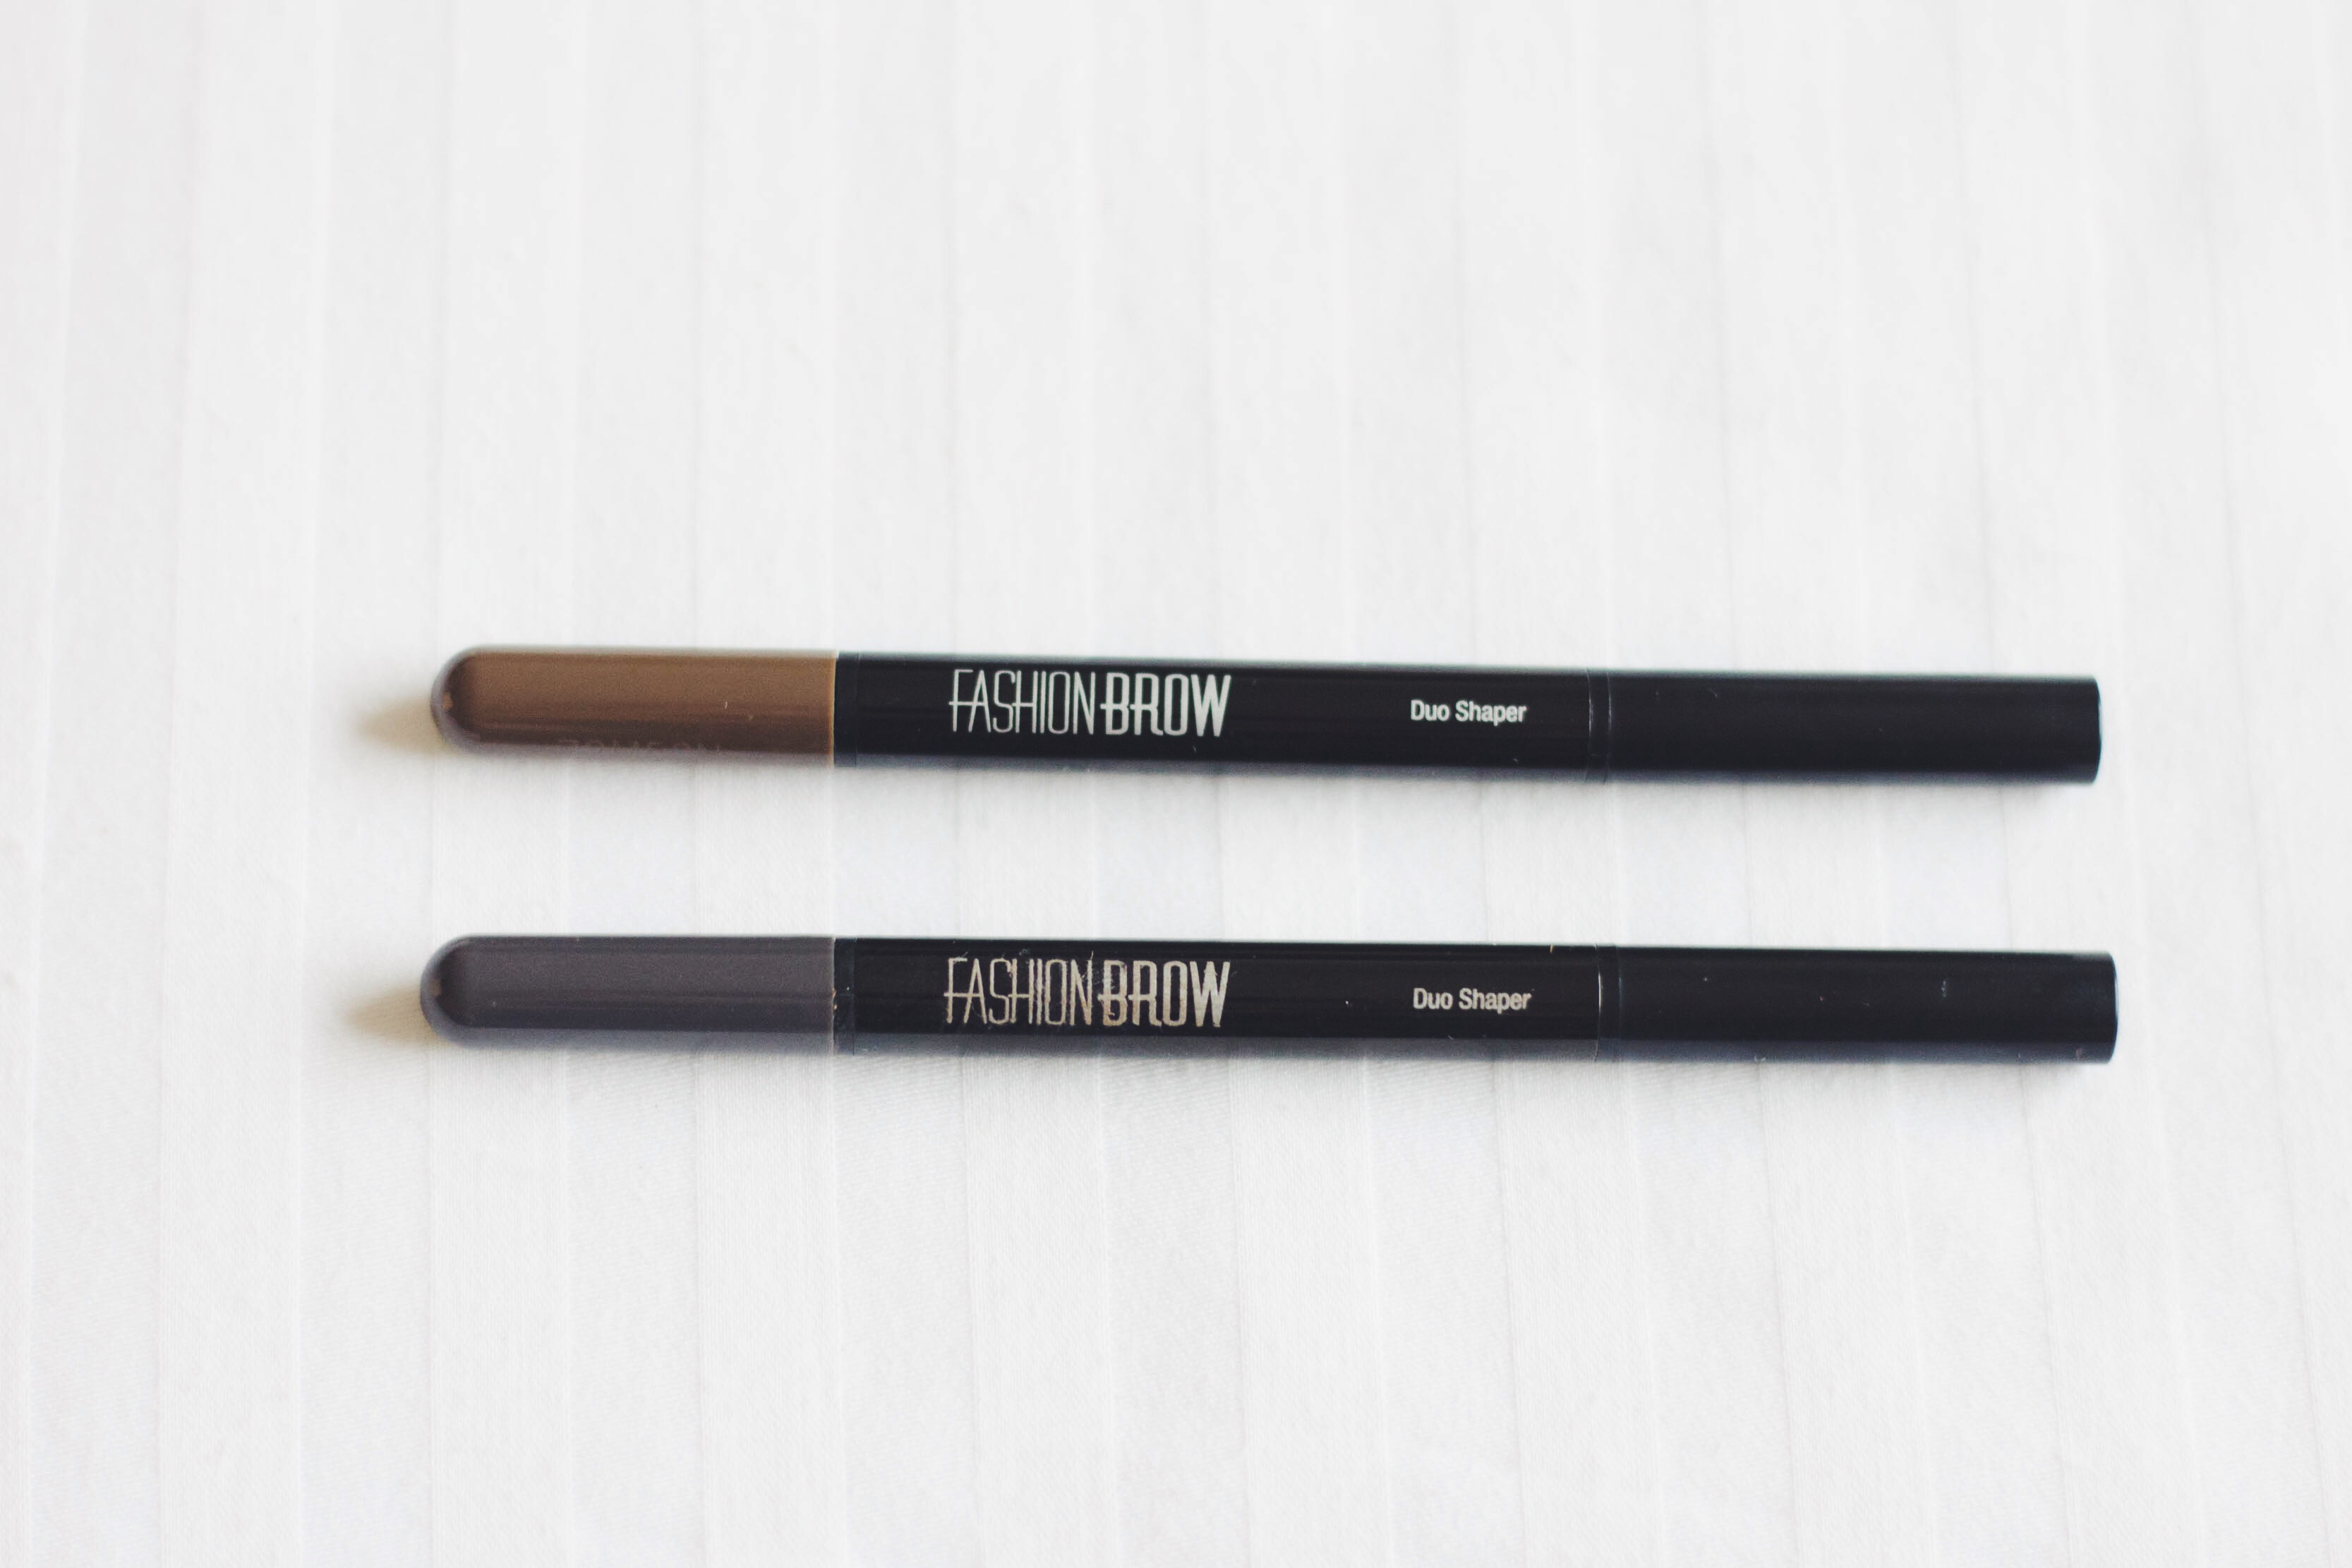 Maybelline Fashion Brow Duo Shaper India Review